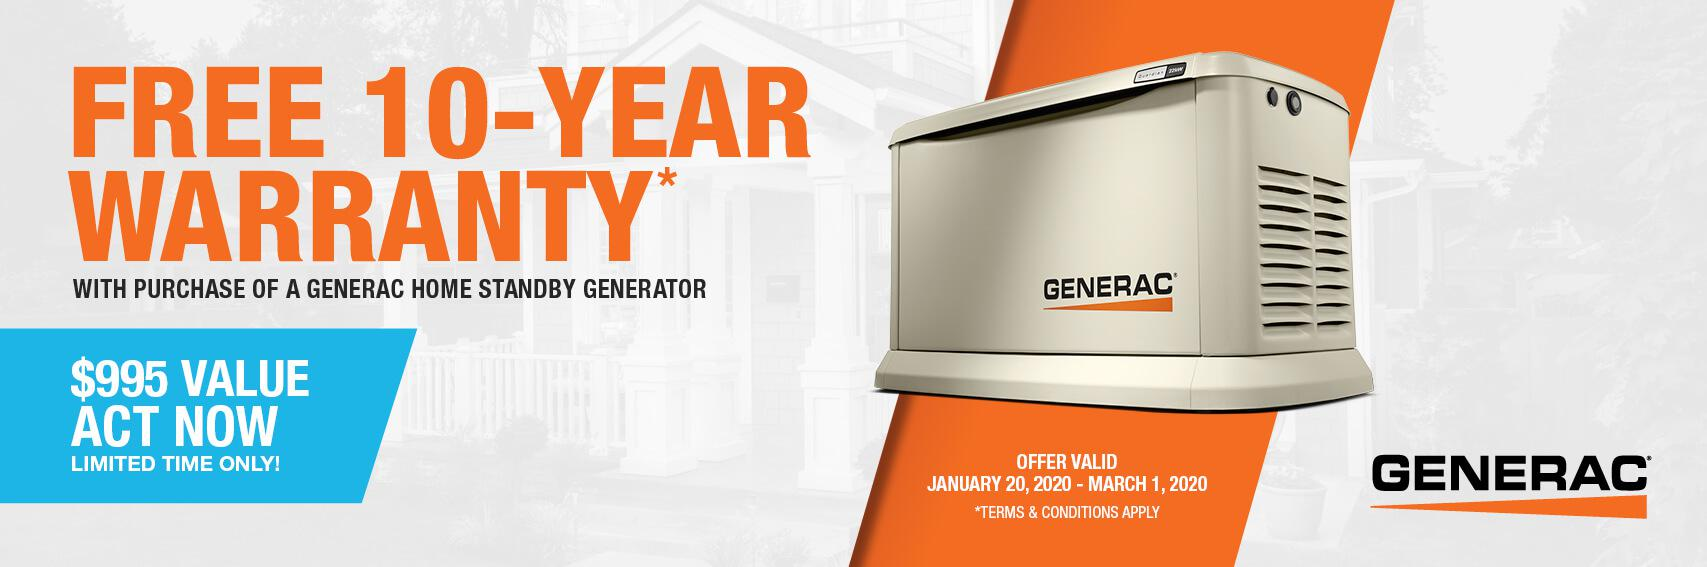 Homestandby Generator Deal | Warranty Offer | Generac Dealer | Buckhannon, WV